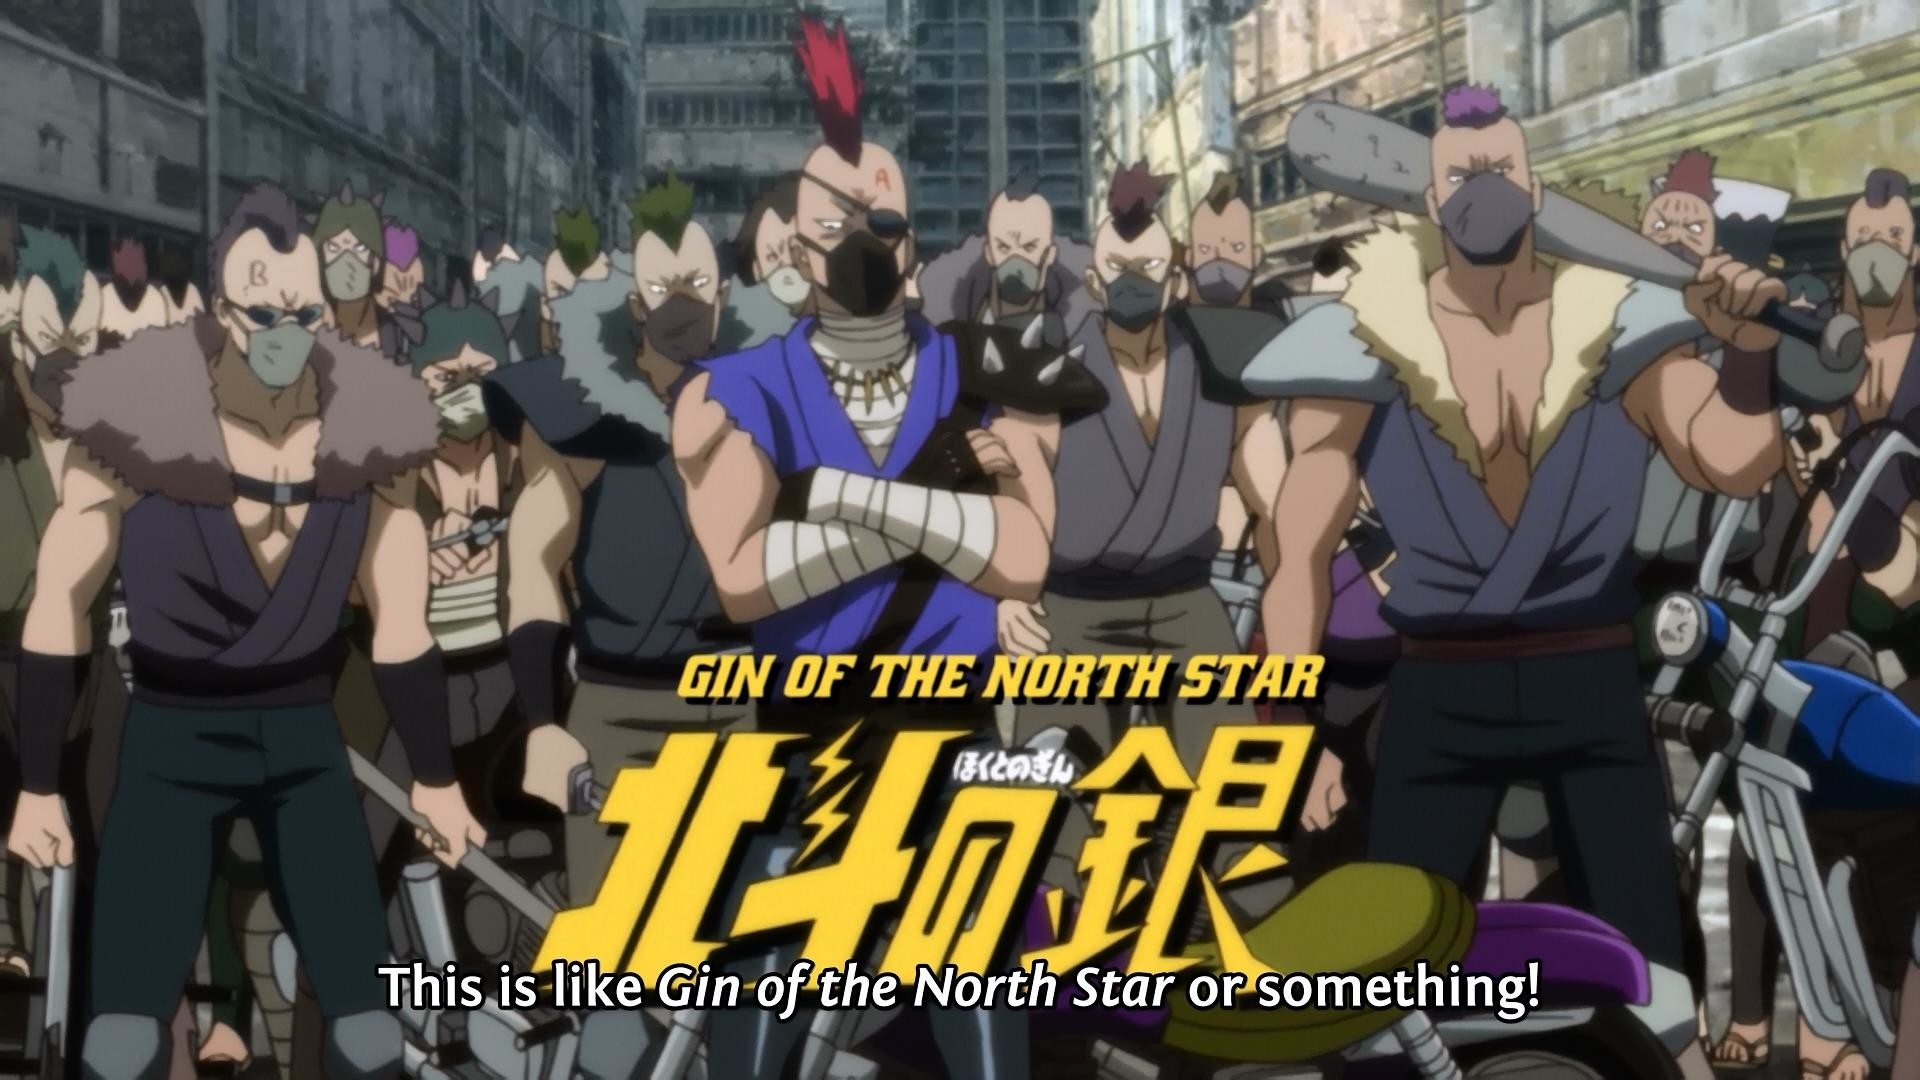 too bad I didn't watch the original Hokuto no Ken my knowledge regarding  the series only comes from Gintama lol